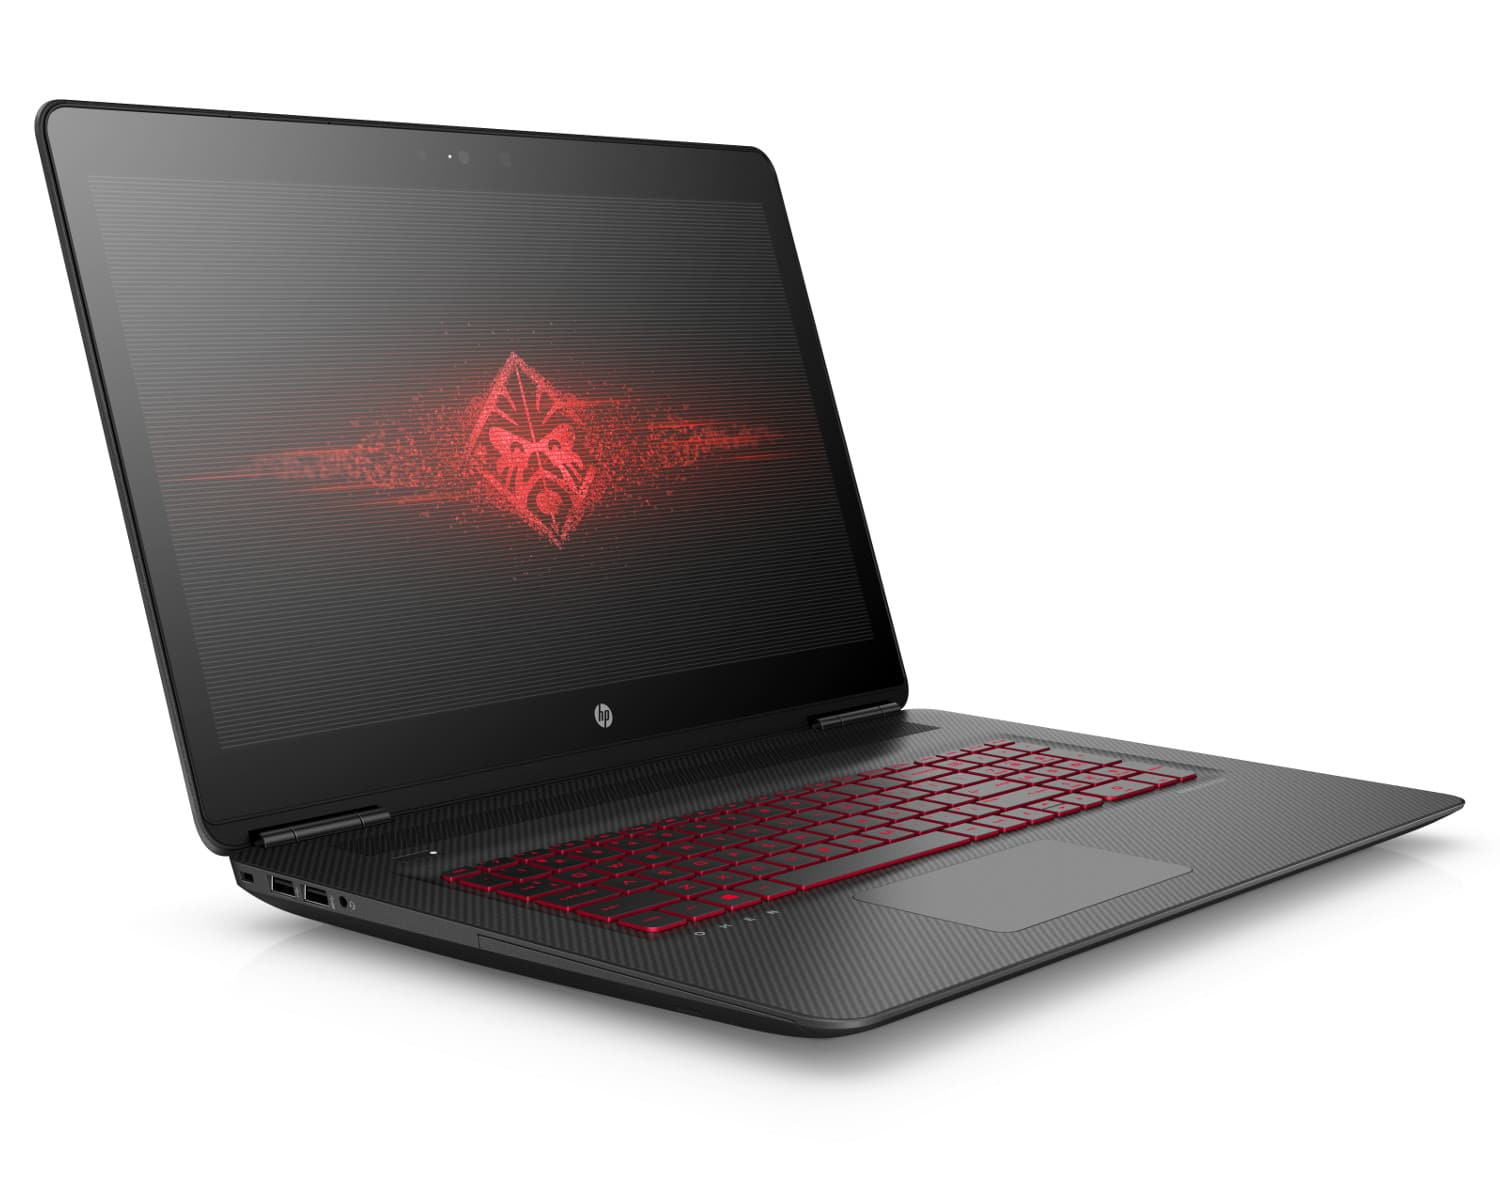 HP Omen 15-ax042nf, PC portable 15 pouces jeu SSD256 i7 960M IPS (749€)